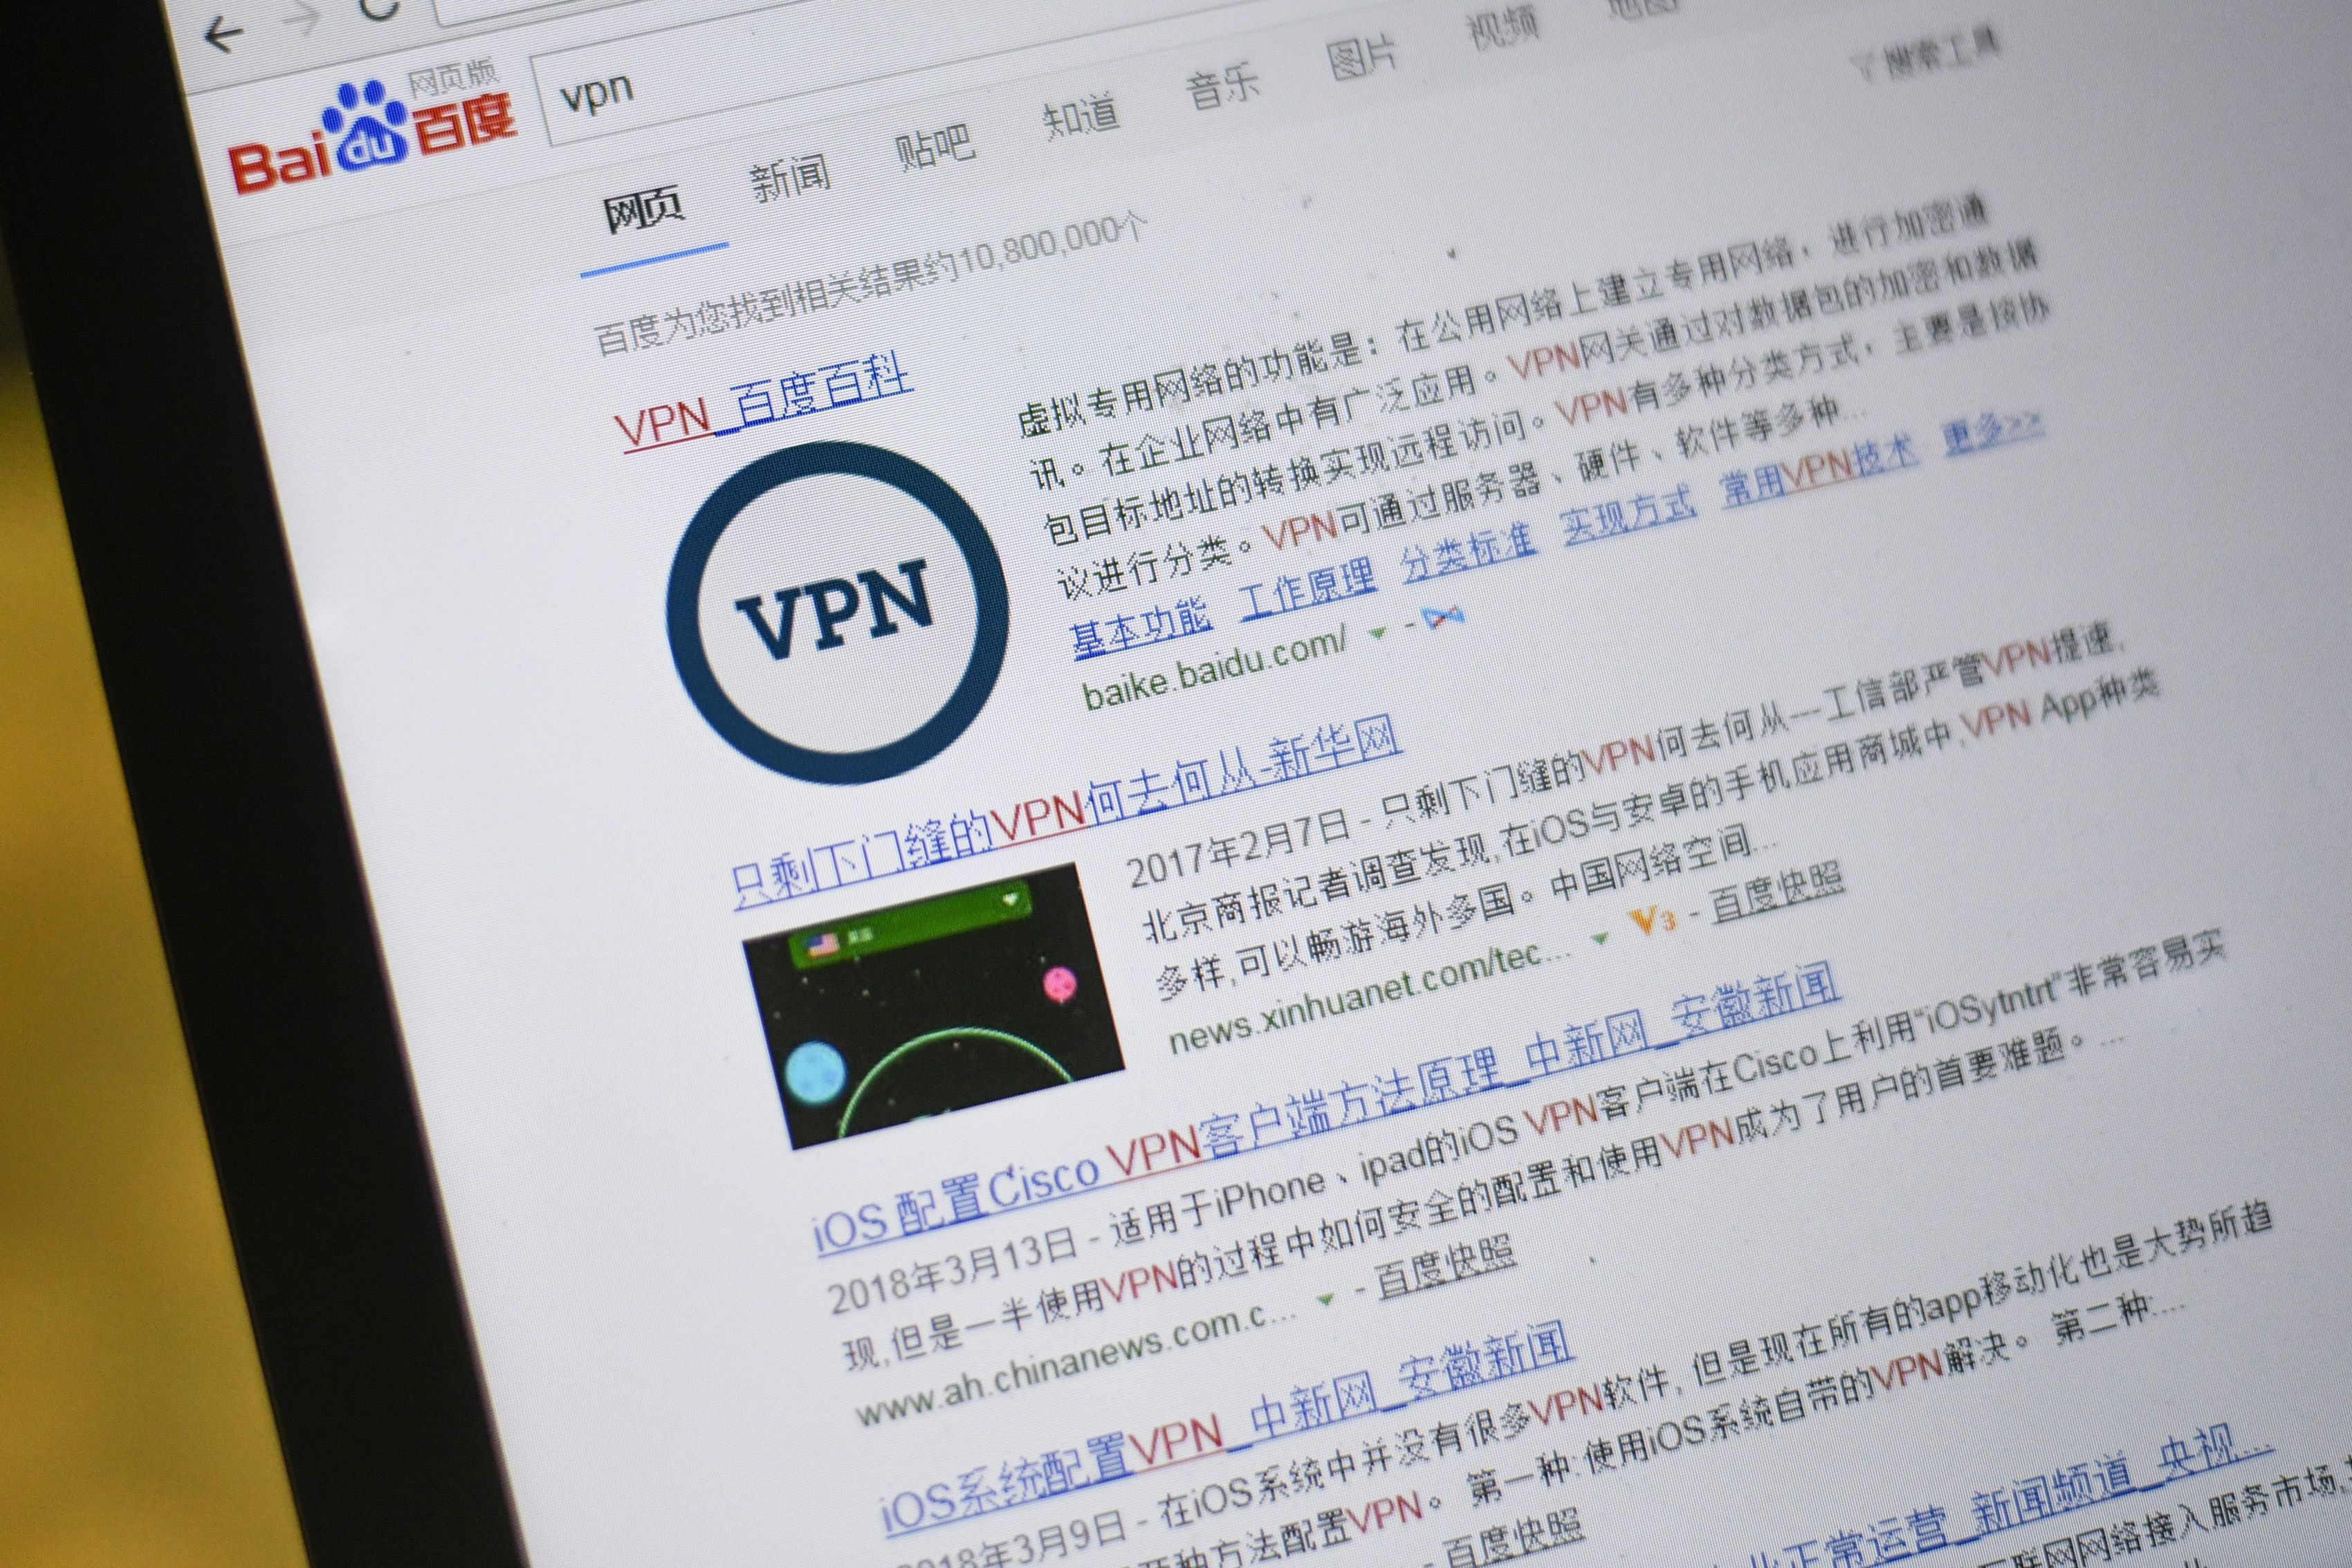 Chinese VPN user fined for accessing overseas websites as part of